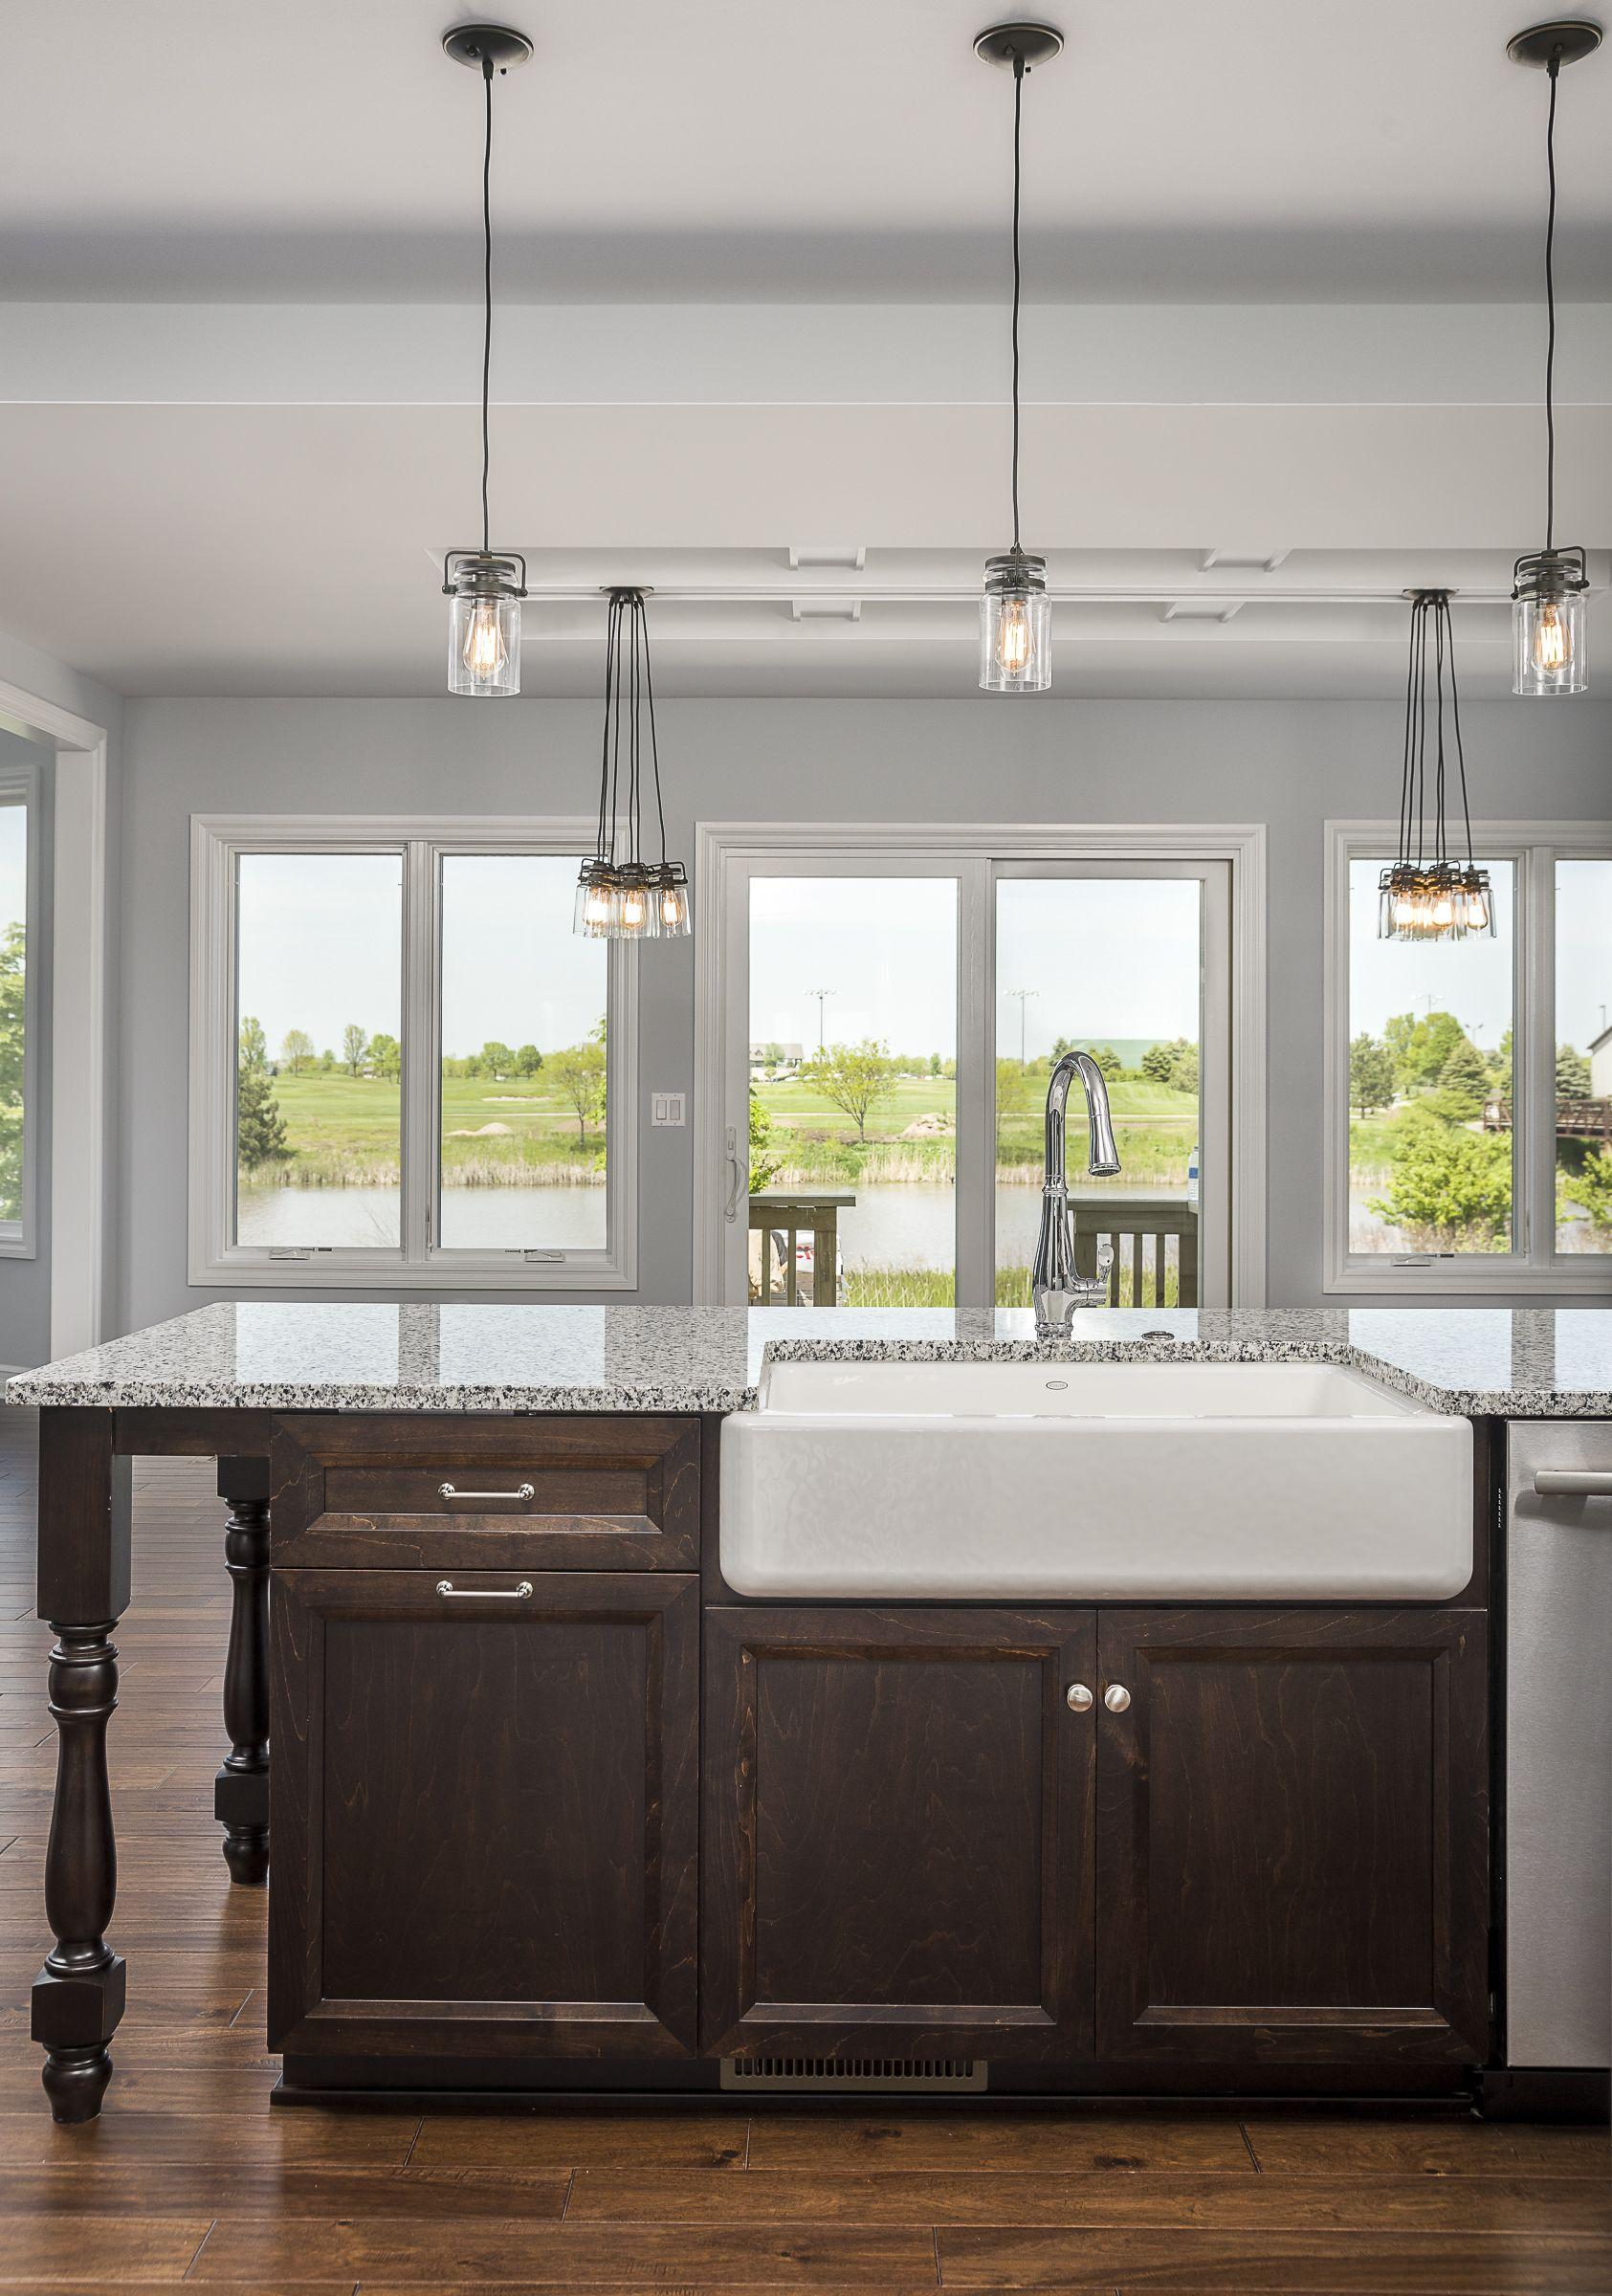 lighting stores naperville farm sink lighting cabinets and gorgeous view in this custom home built by kings court builders naperville il